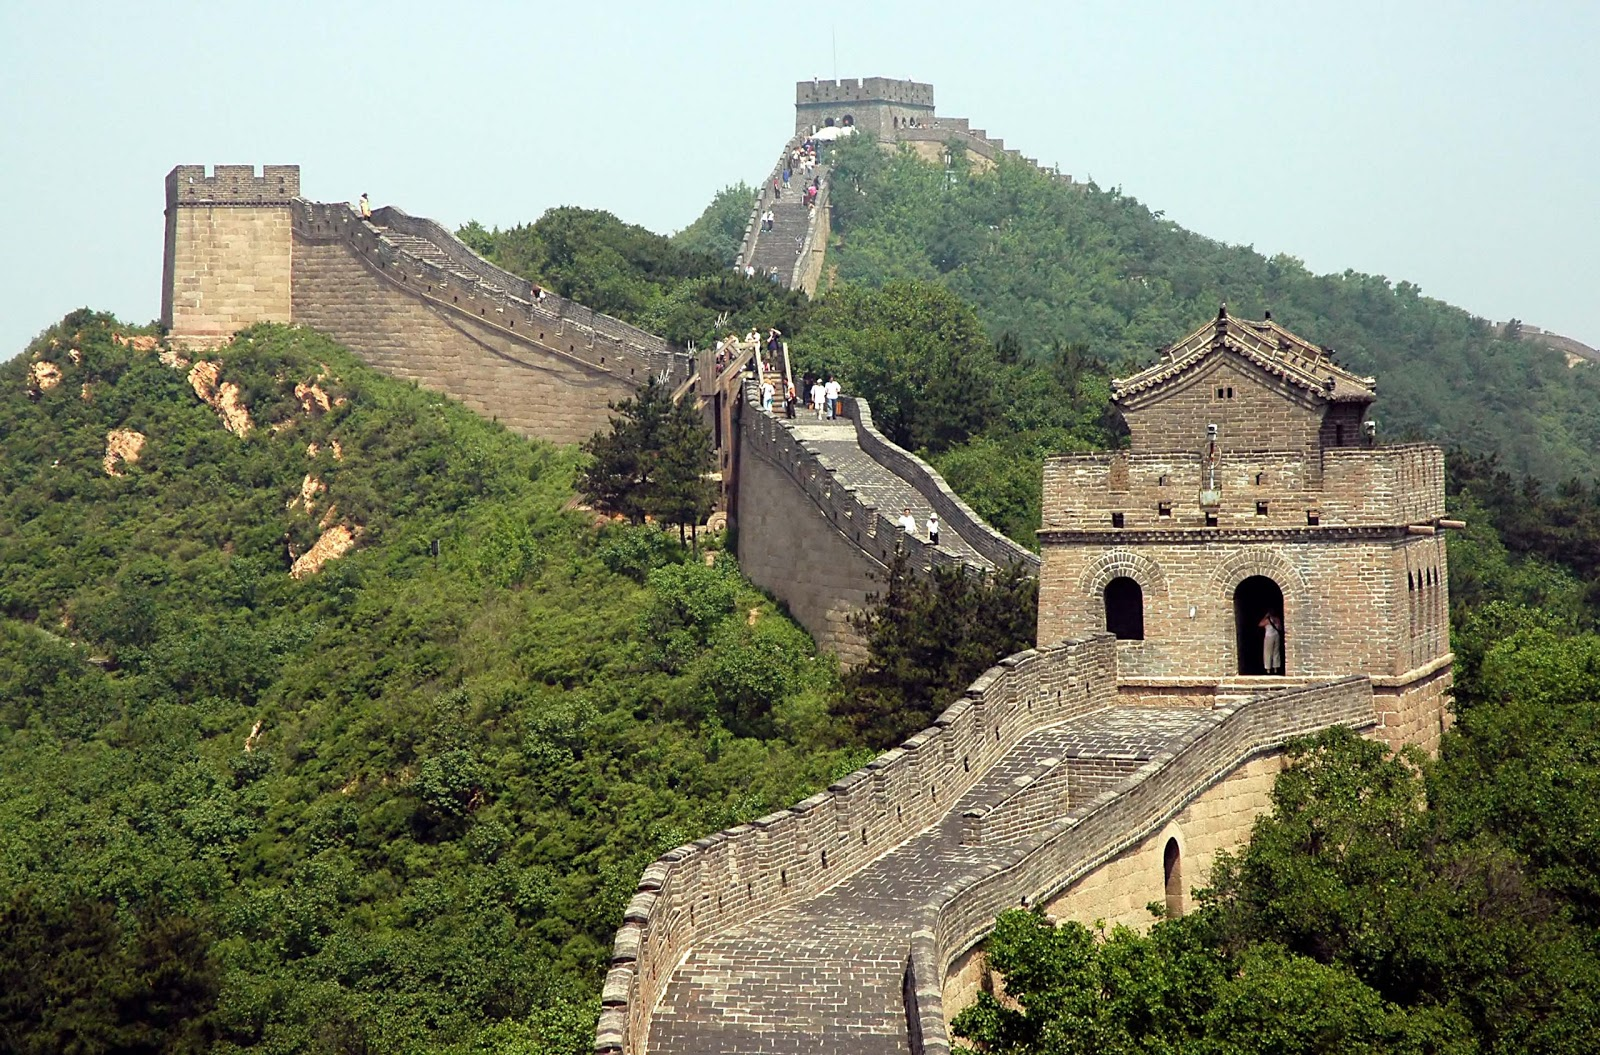 the great wall of china Welcome to great wall voted best chinese resaurant in townd, dine in take out catering welcome to great wall our restaurant offers a wide array of fine chinese dishes, ranging from traditional dish such as shrimp rolls, chow mein, fried rice to new style entrees such as shrimp toast,teriyaki chicken and pu pu platter.